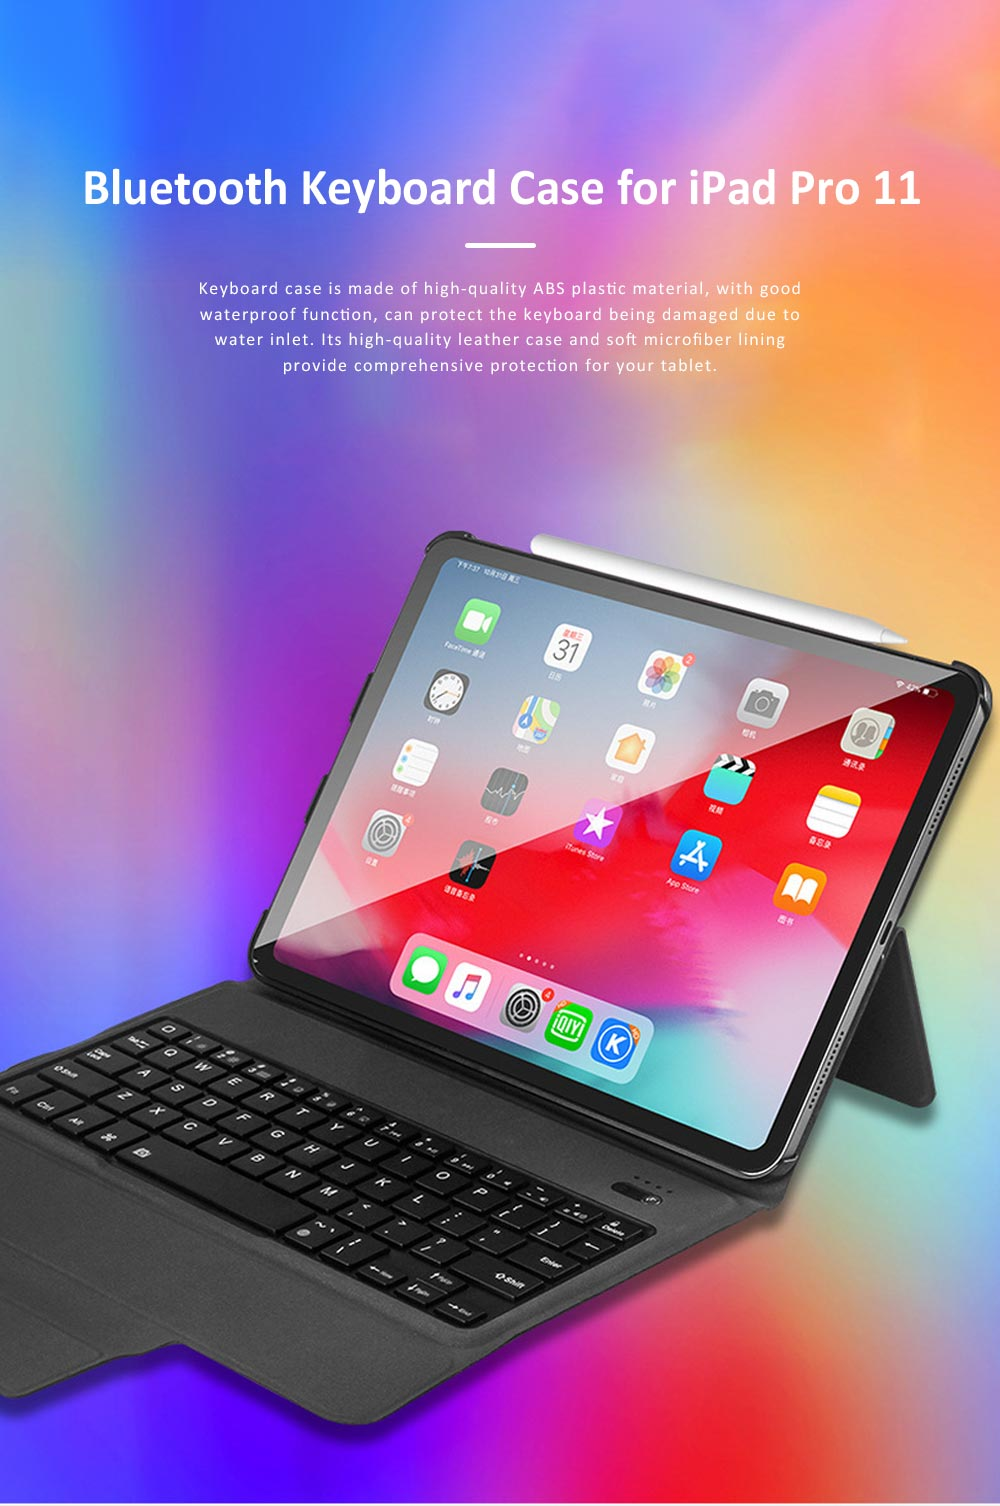 Ultra Thin Bluetooth Keyboard Case for iPad Pro 11 inches 2018, iPad Case with ABS Waterproof Keyboard for Apple iPad Pro 11 0